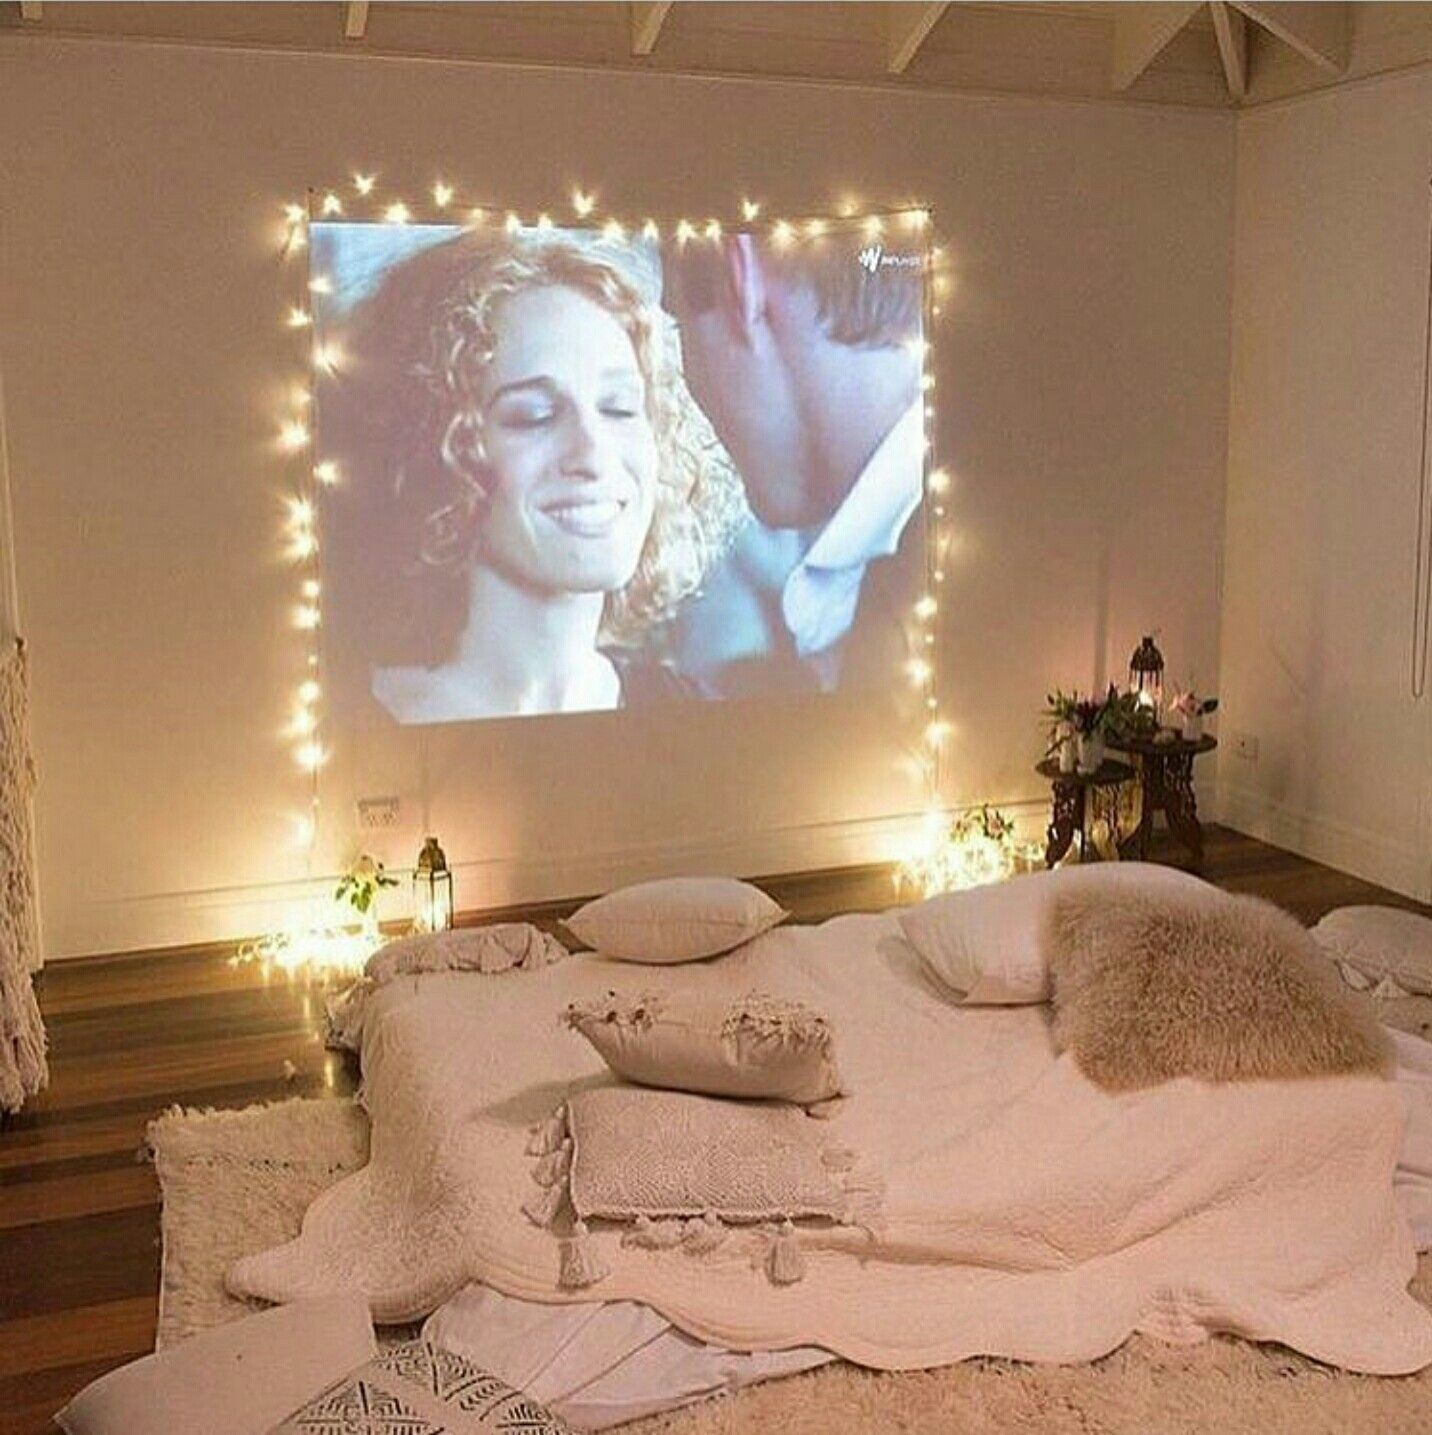 Pin by Sarah Frick on Home Decor Projector in bedroom